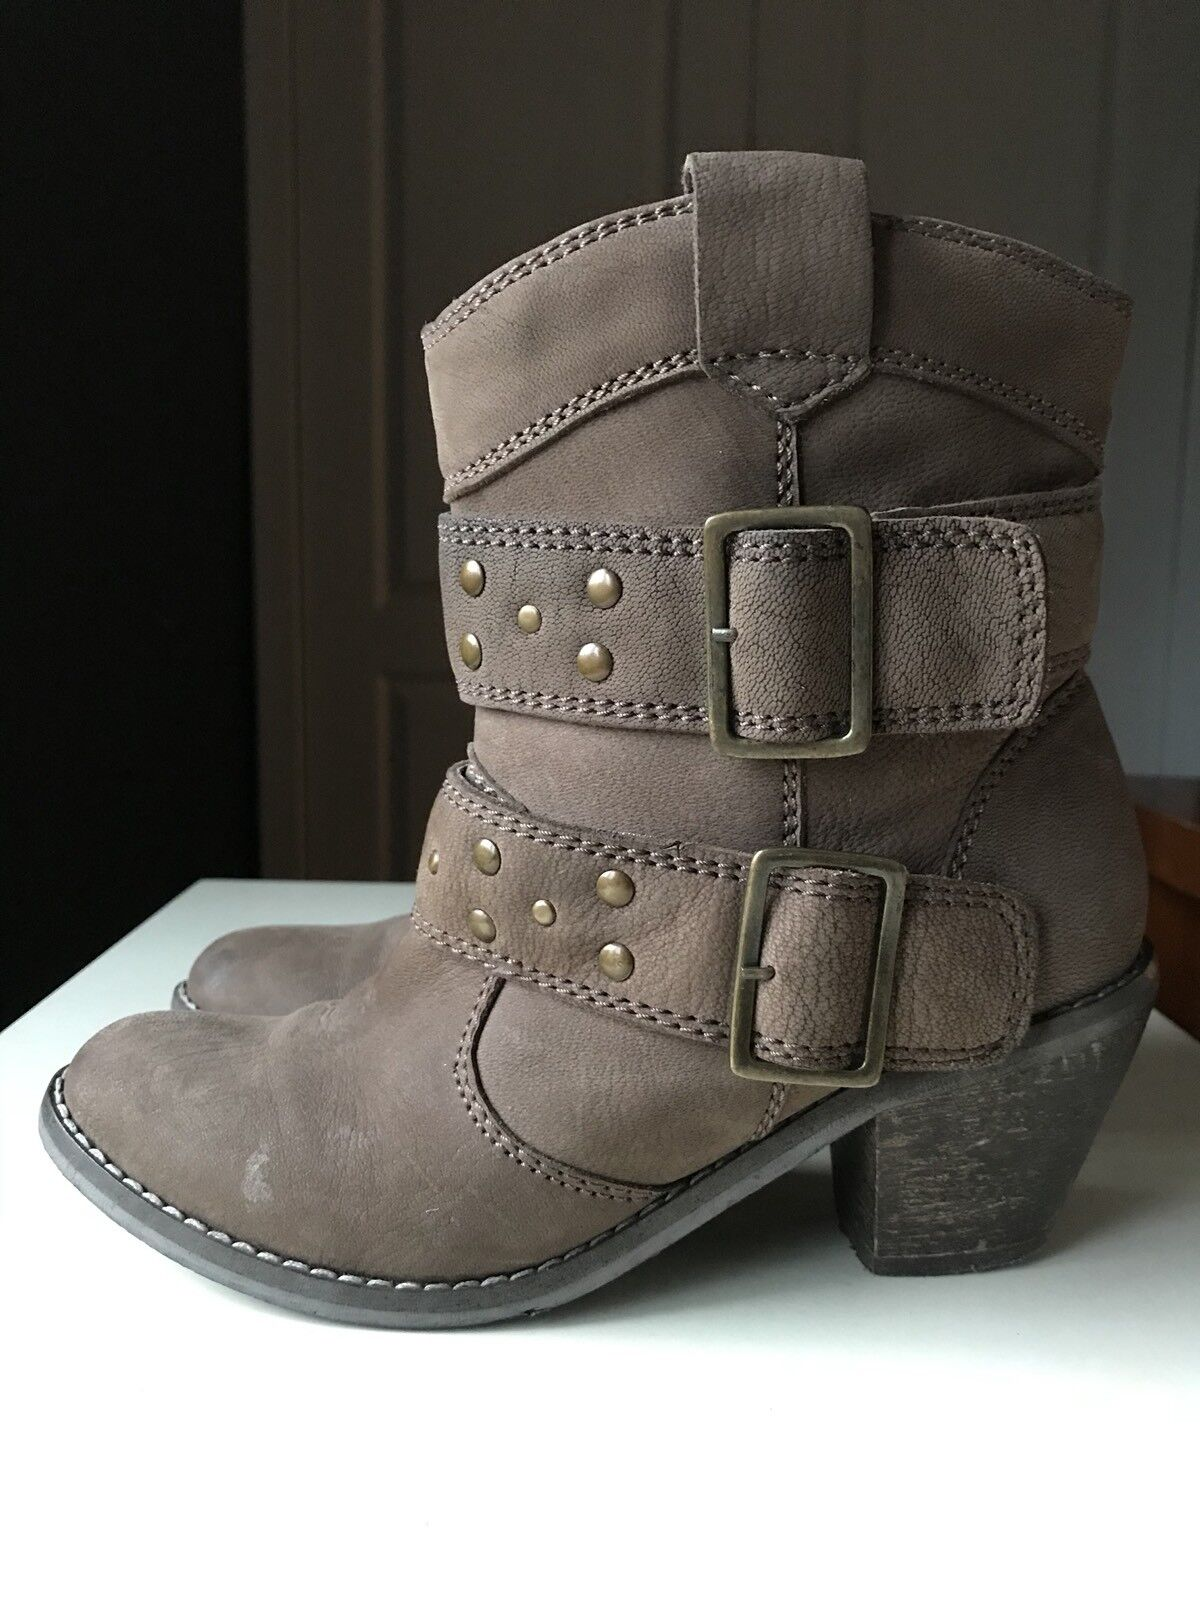 NEXT Designer Brown Leather Women Ladies Ankle High Heel shoes Boot Size 4 37